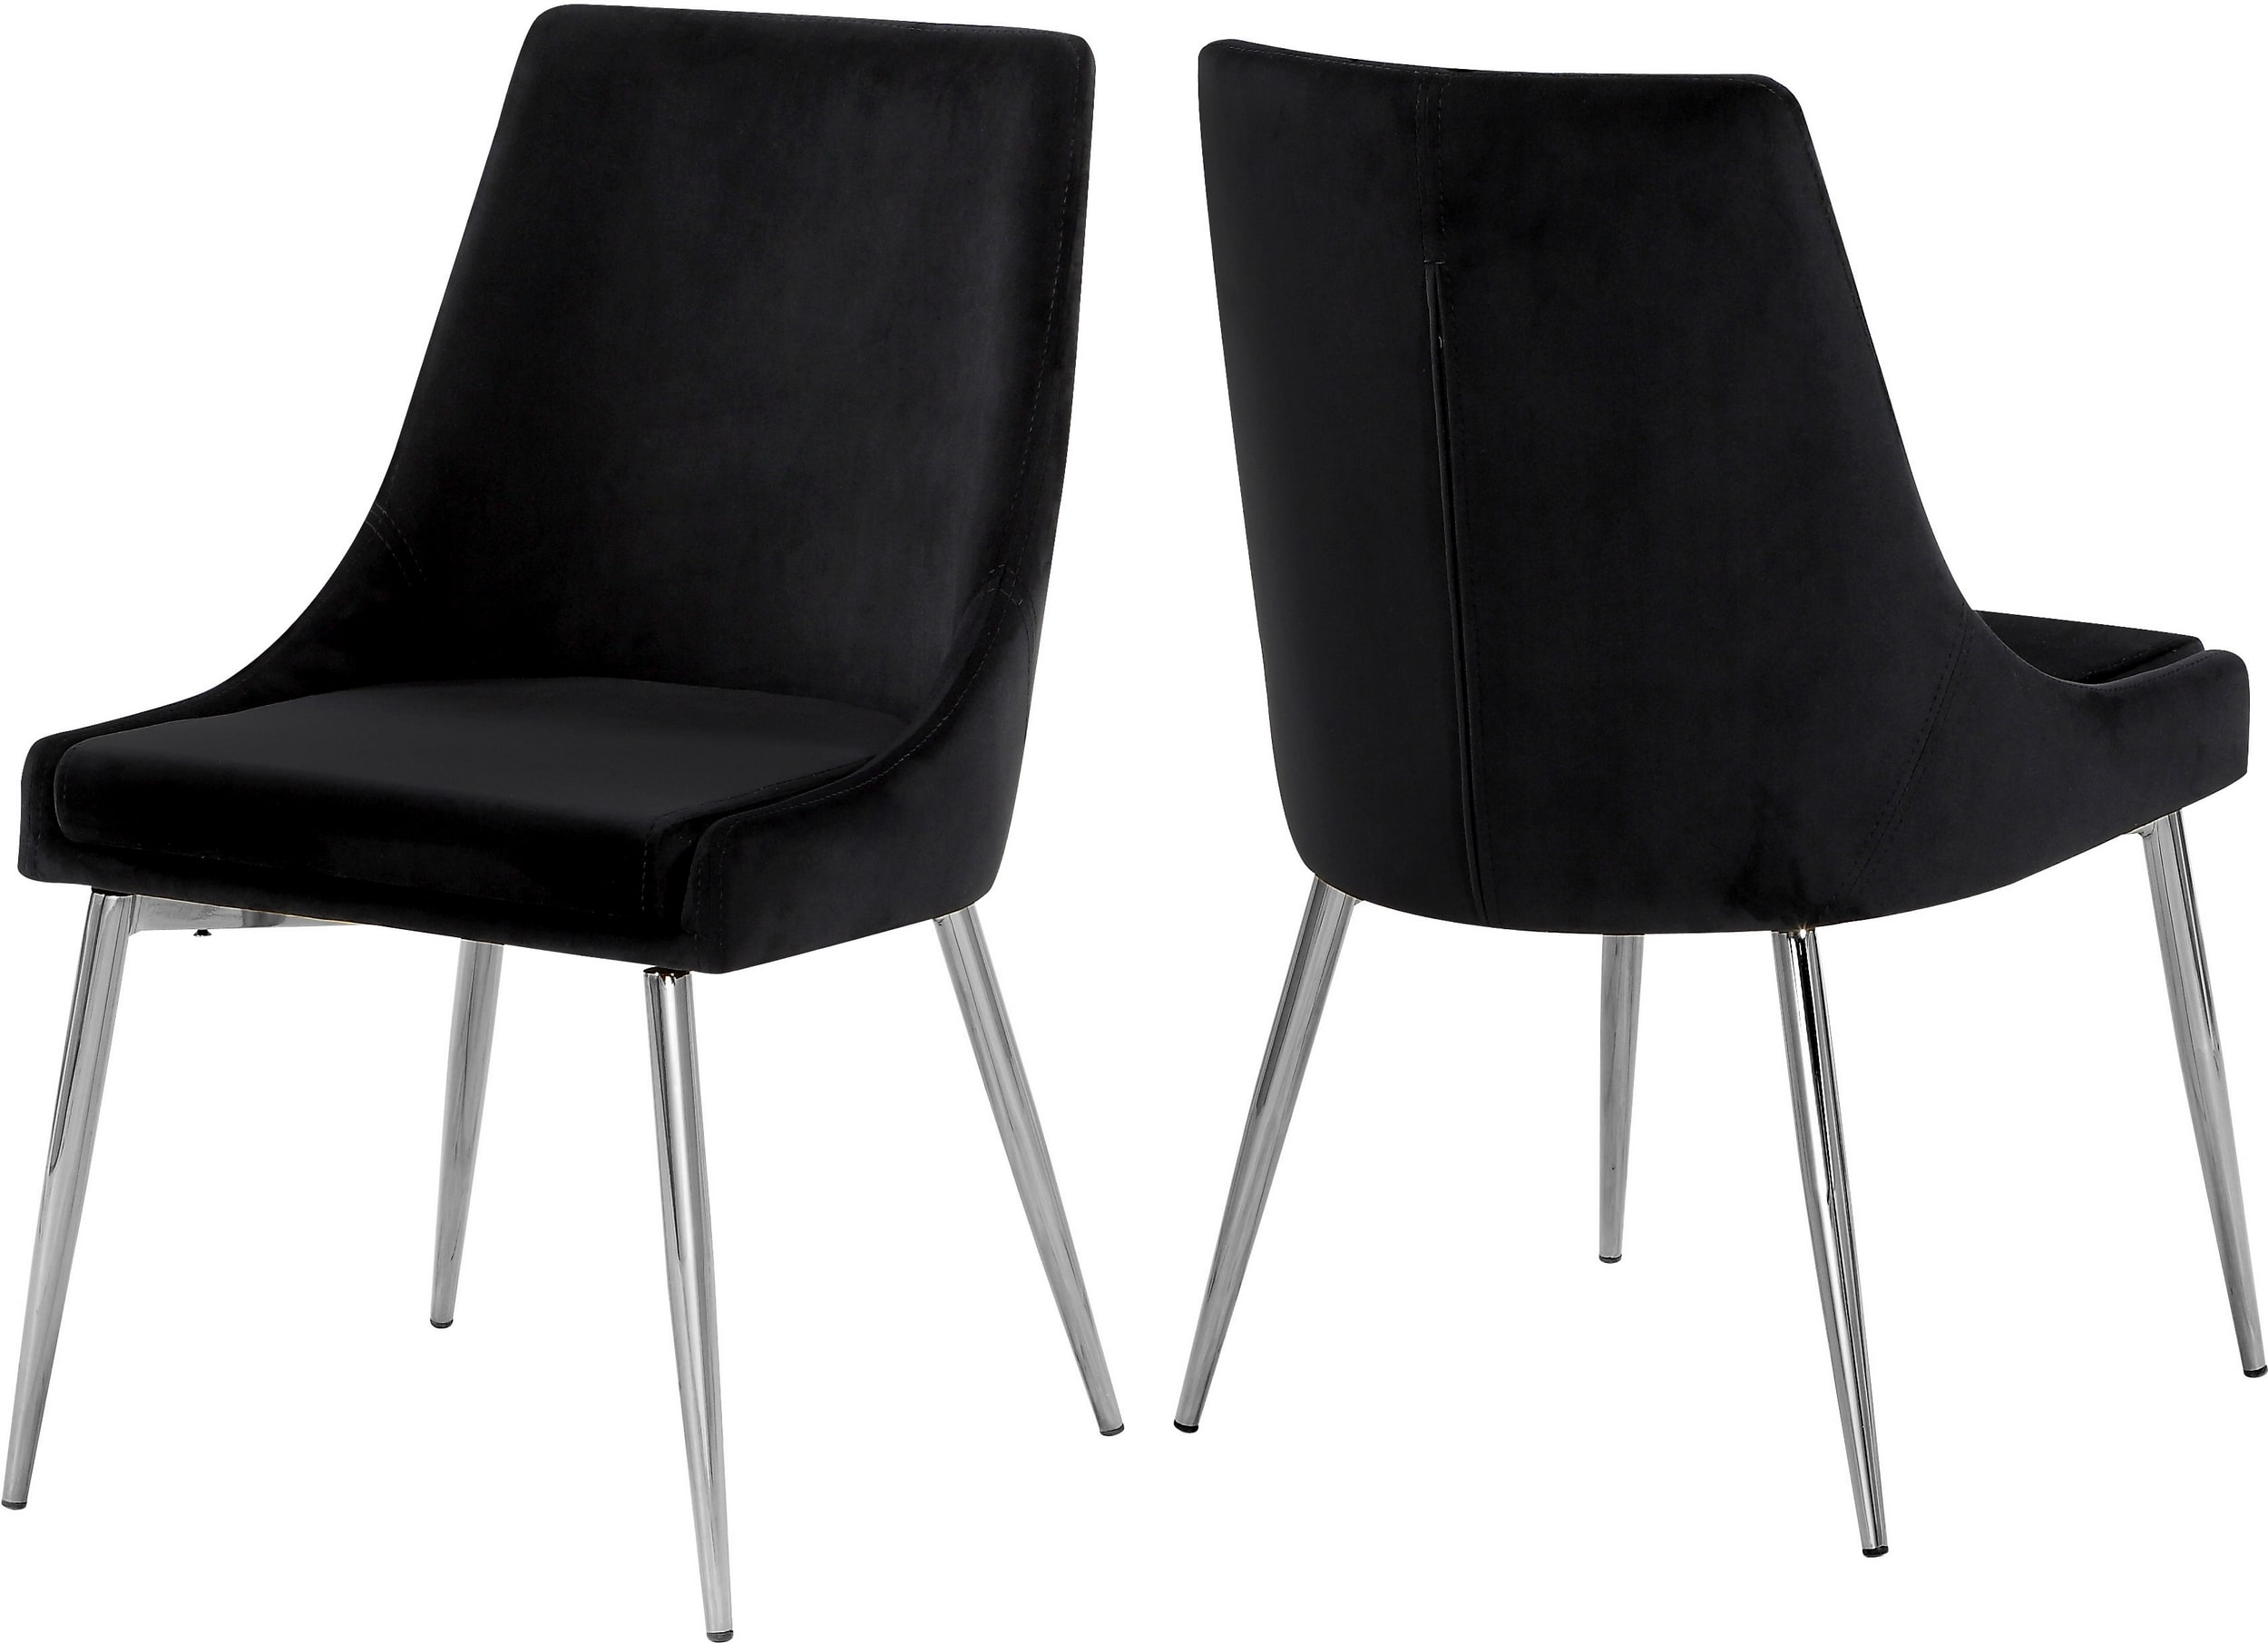 Awe Inspiring Meridian 784Black C Caraccident5 Cool Chair Designs And Ideas Caraccident5Info